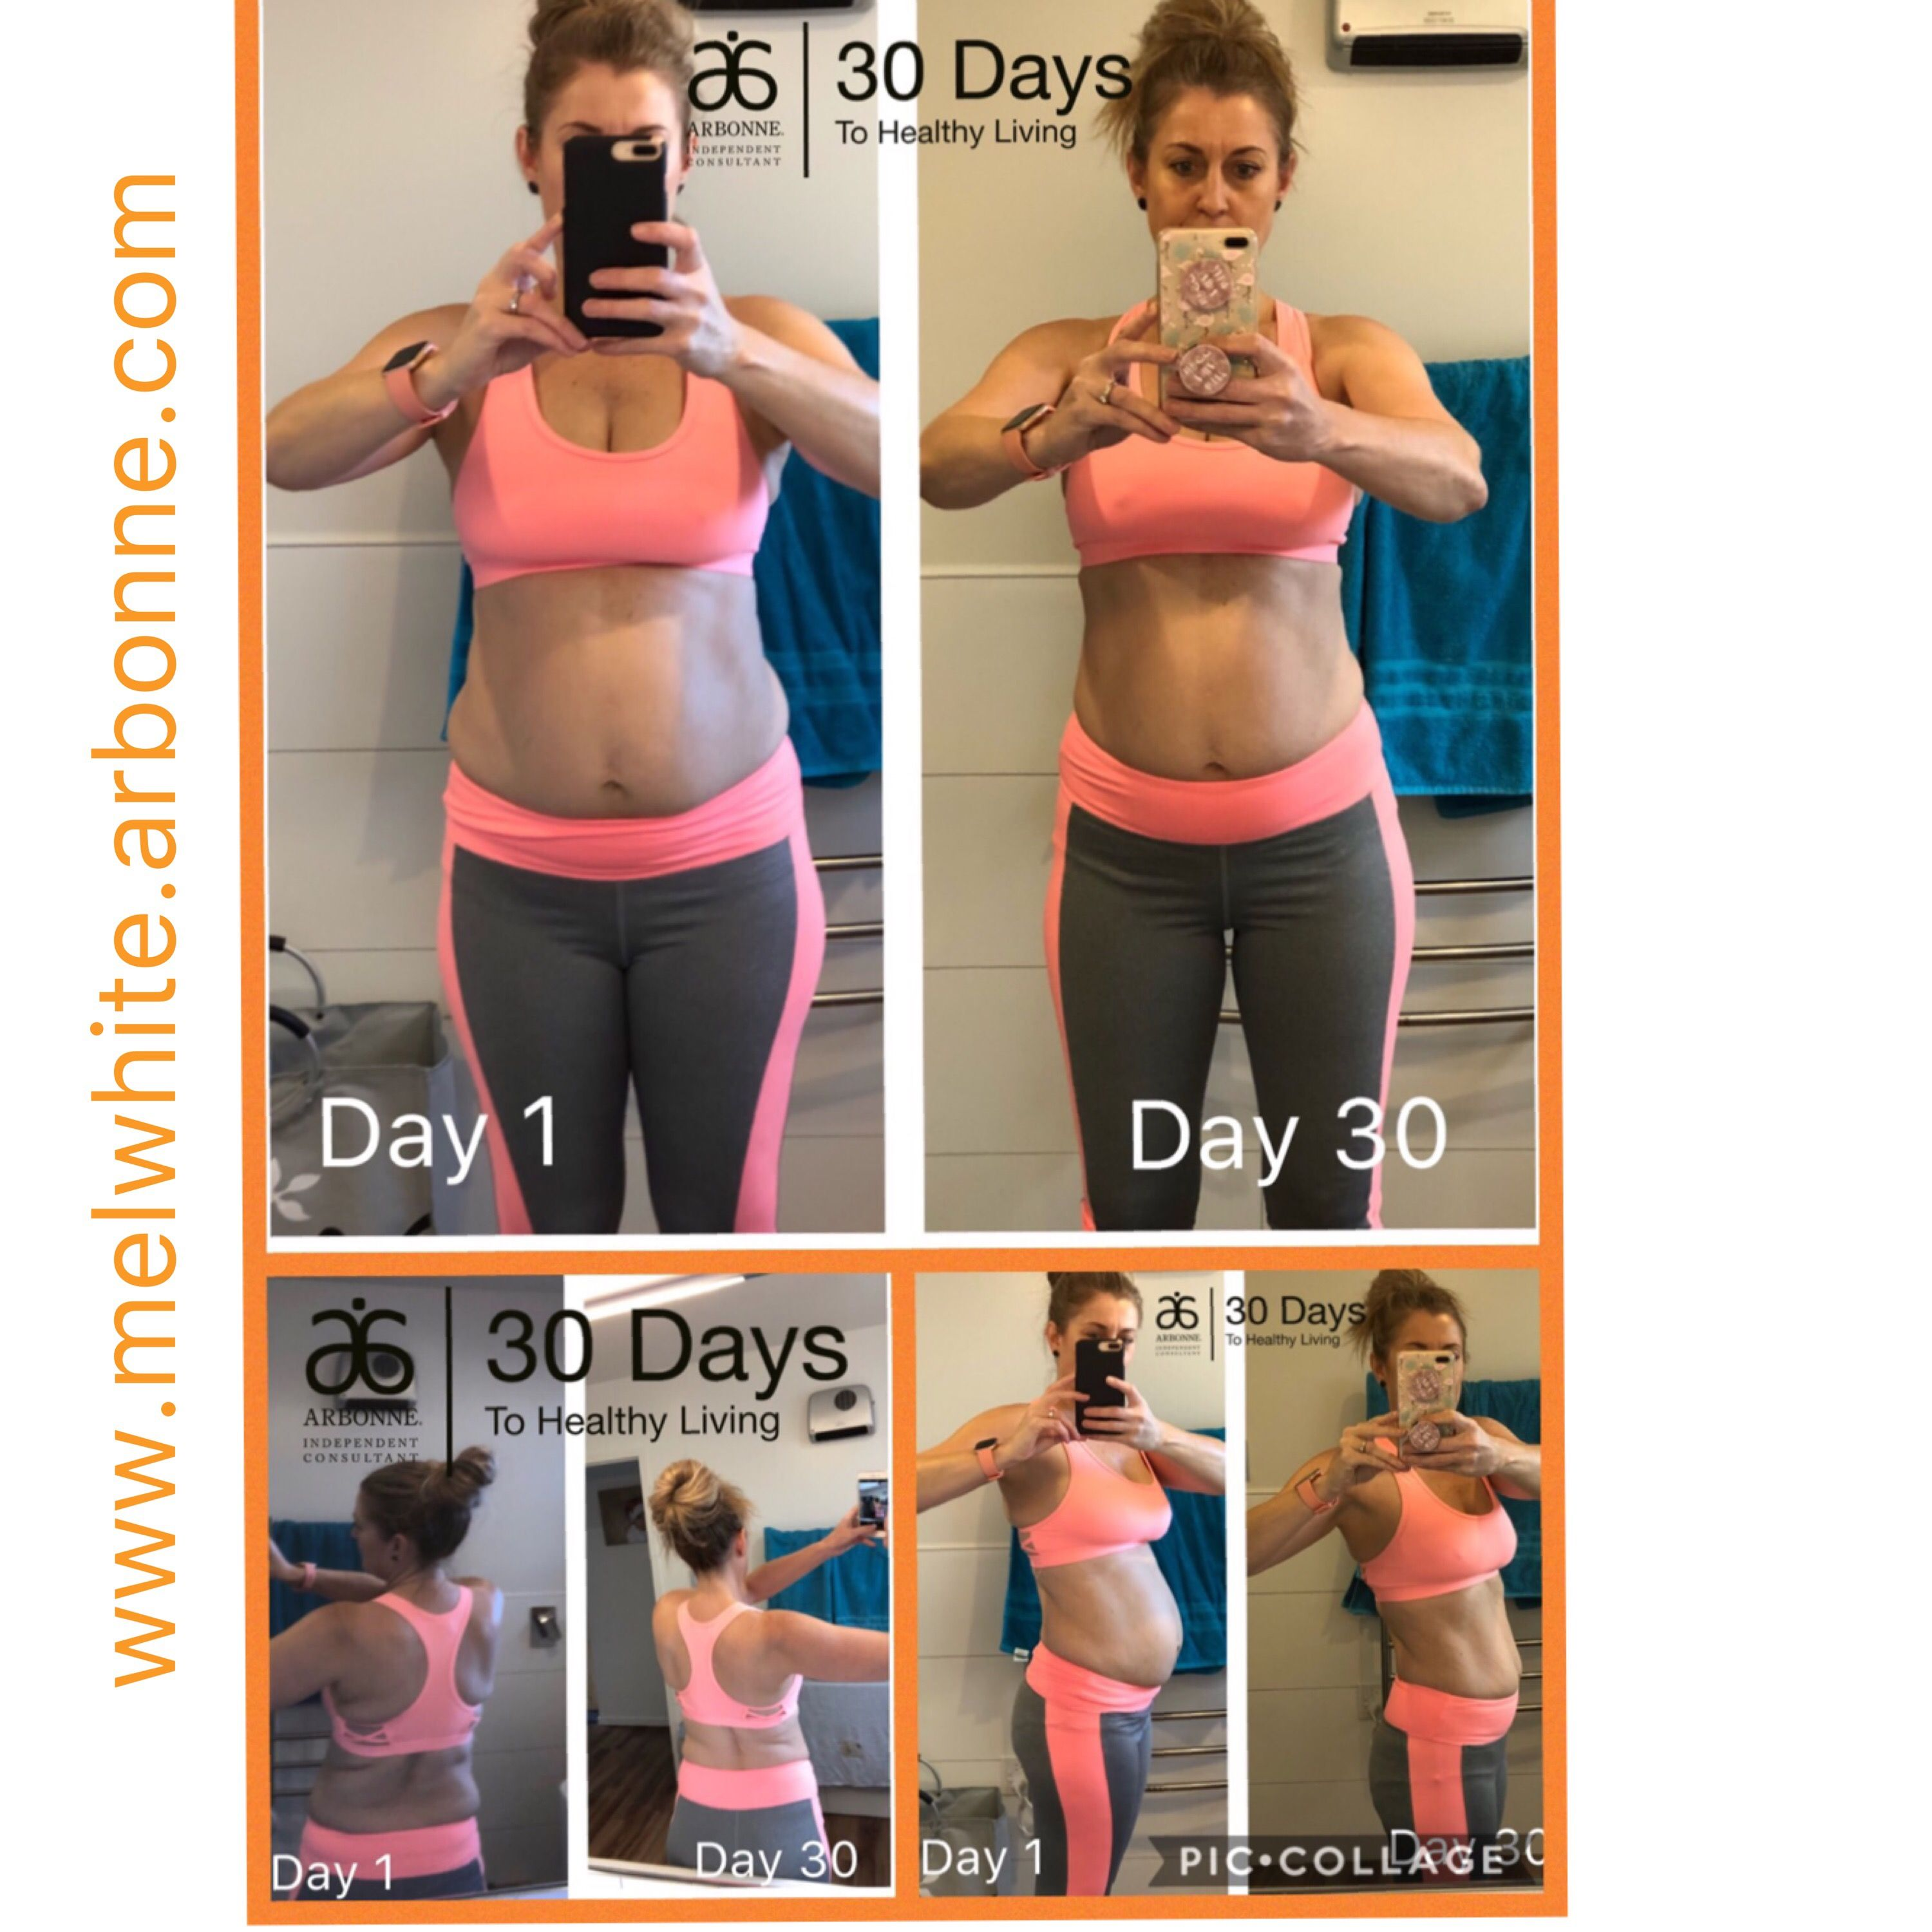 arbonne shakes on the keto diet